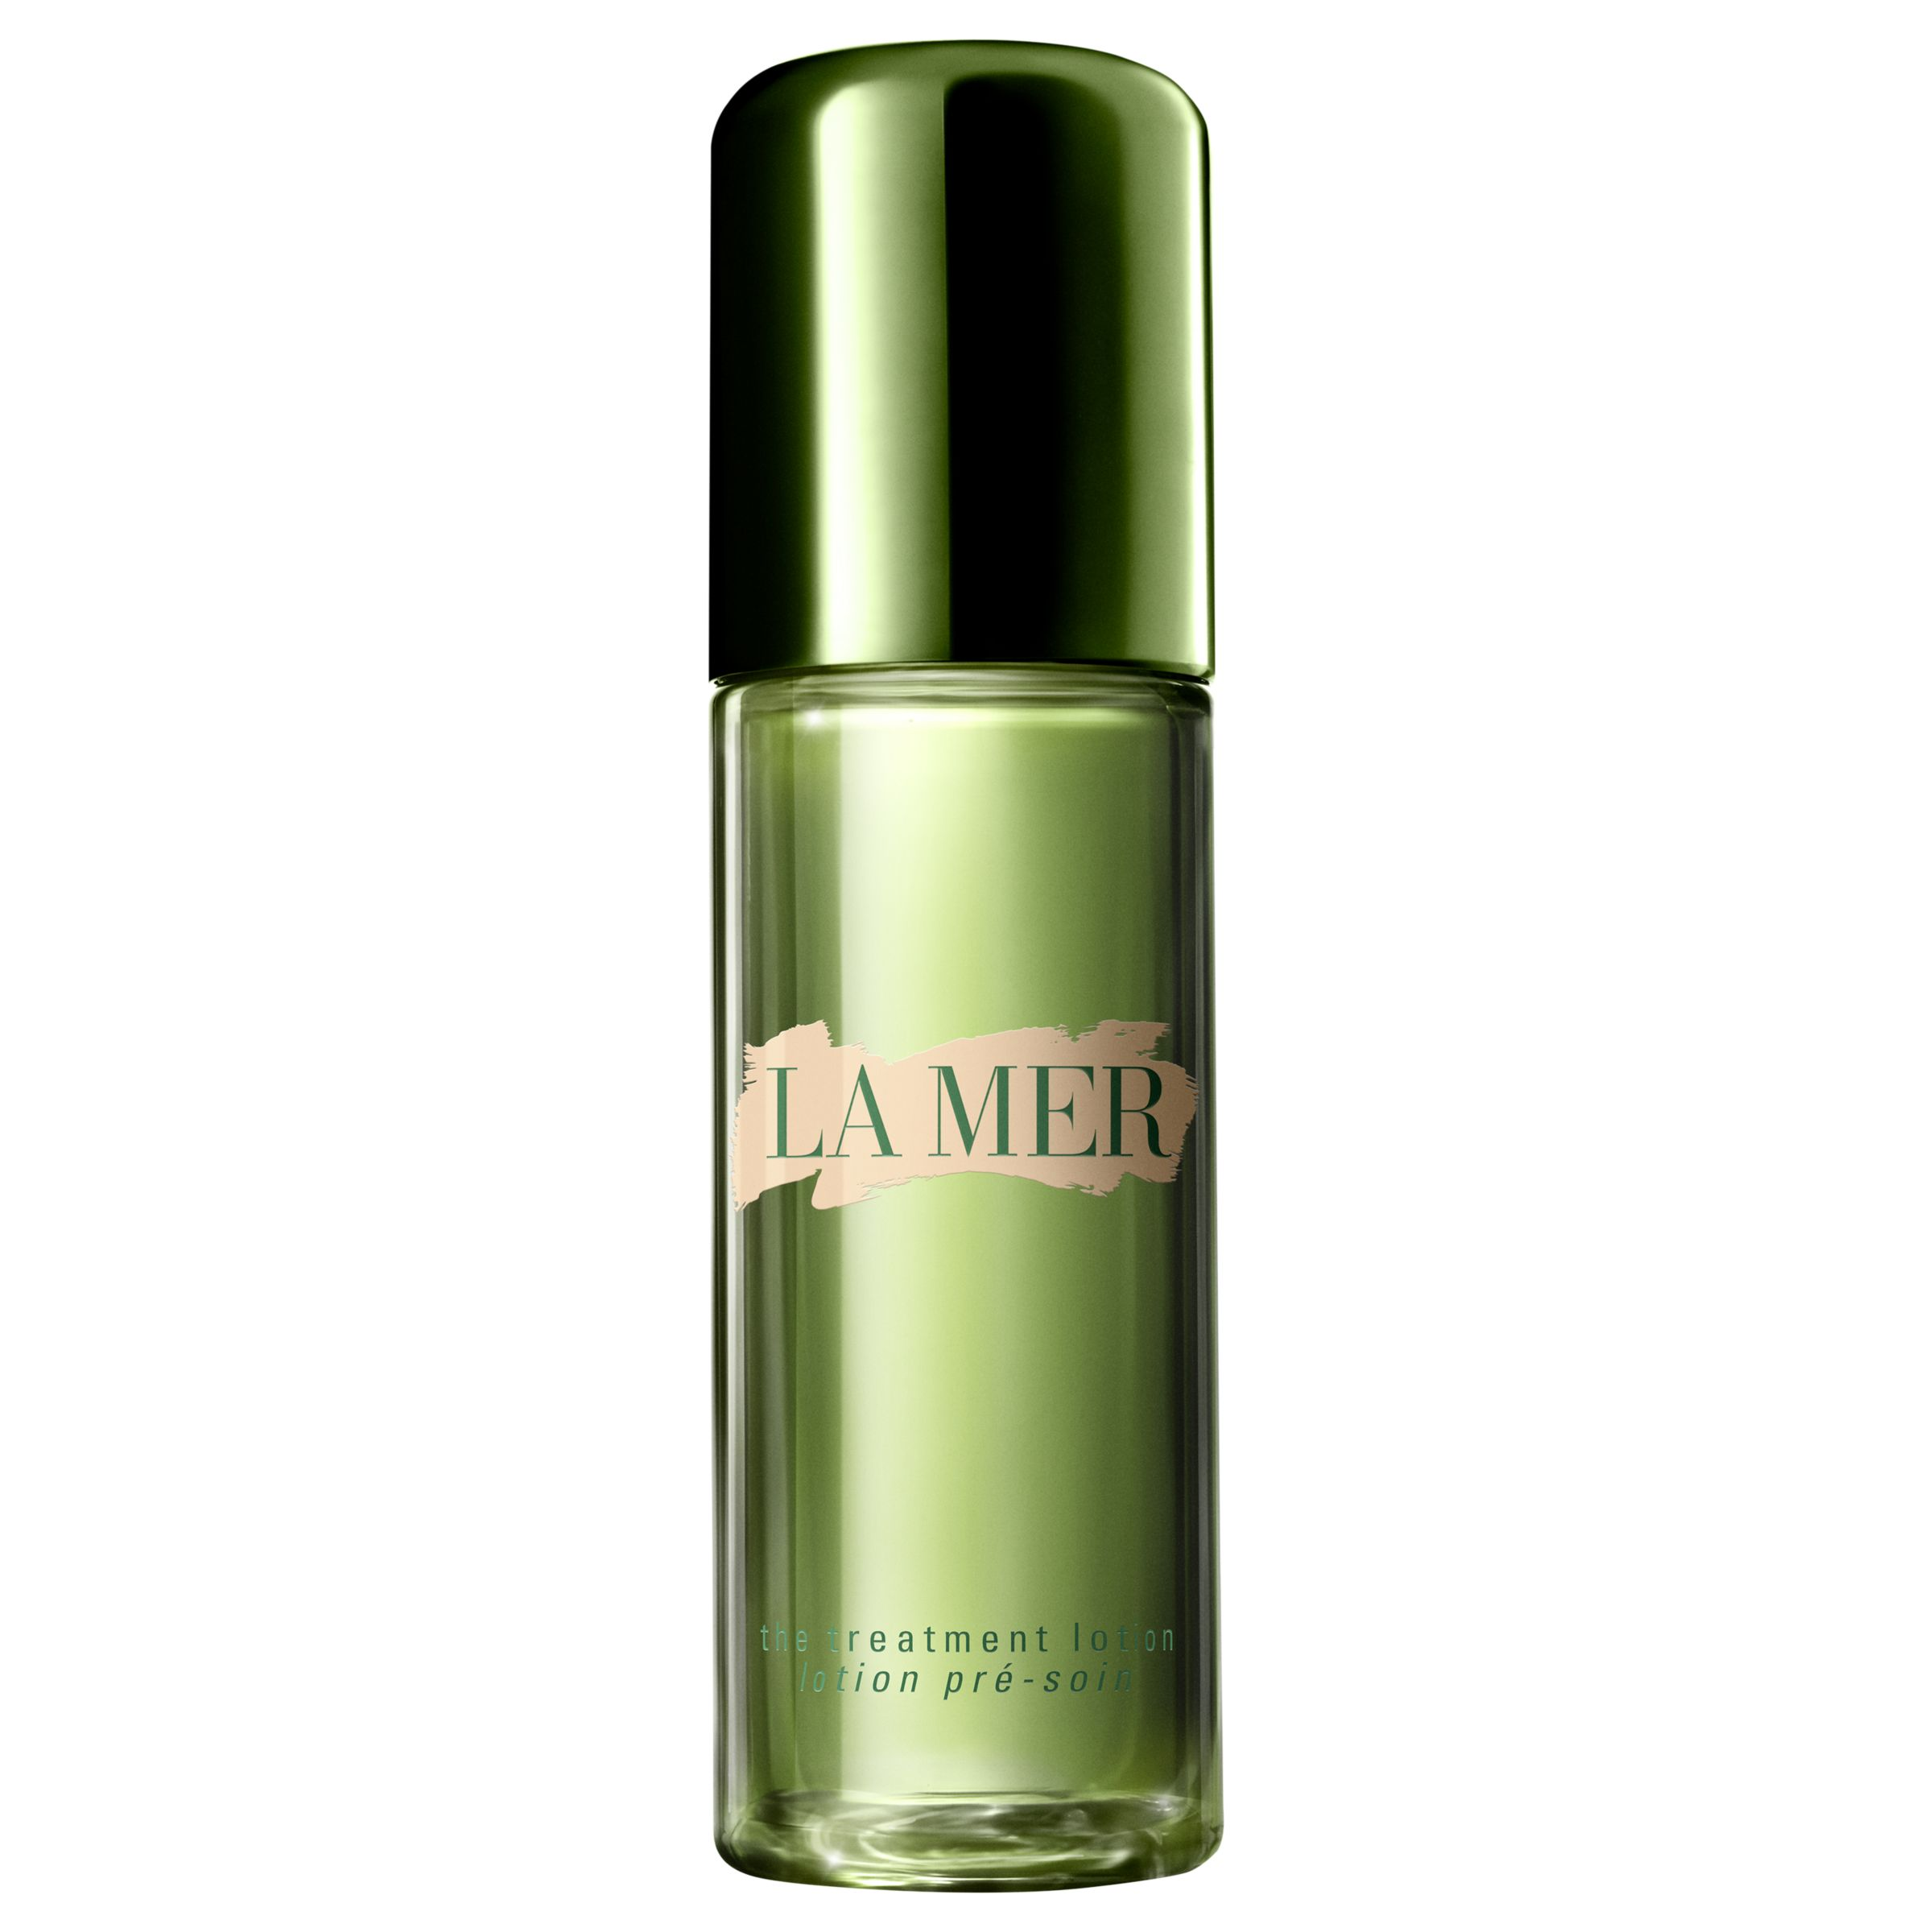 La Mer La Mer The Treatment Lotion